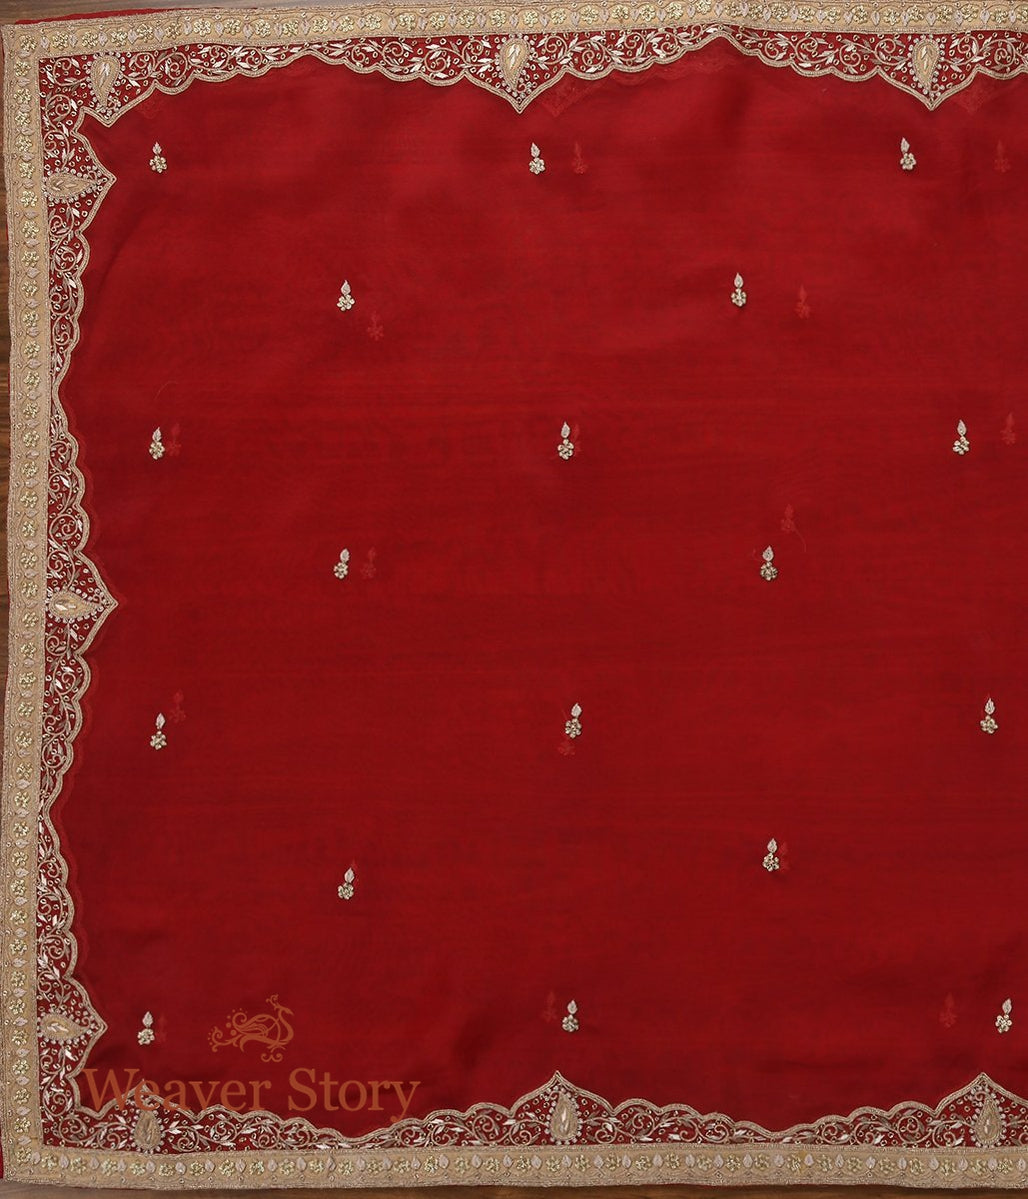 Red Zardozi Dupatta with Mughal Border